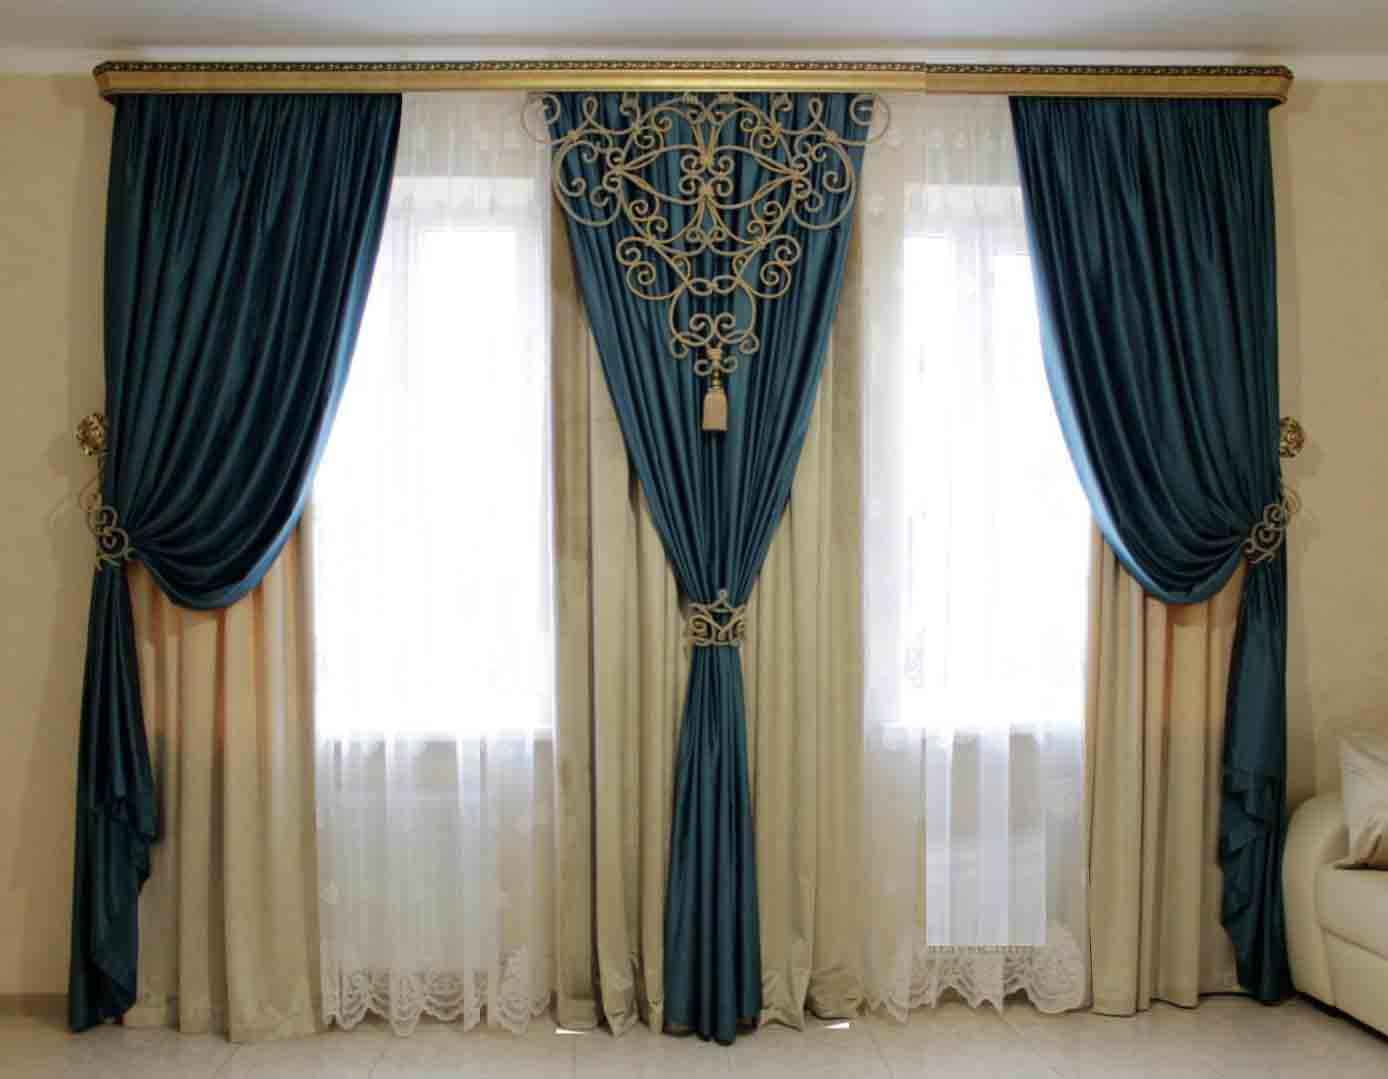 50 stylish modern living room curtains designs ideas colors. Black Bedroom Furniture Sets. Home Design Ideas